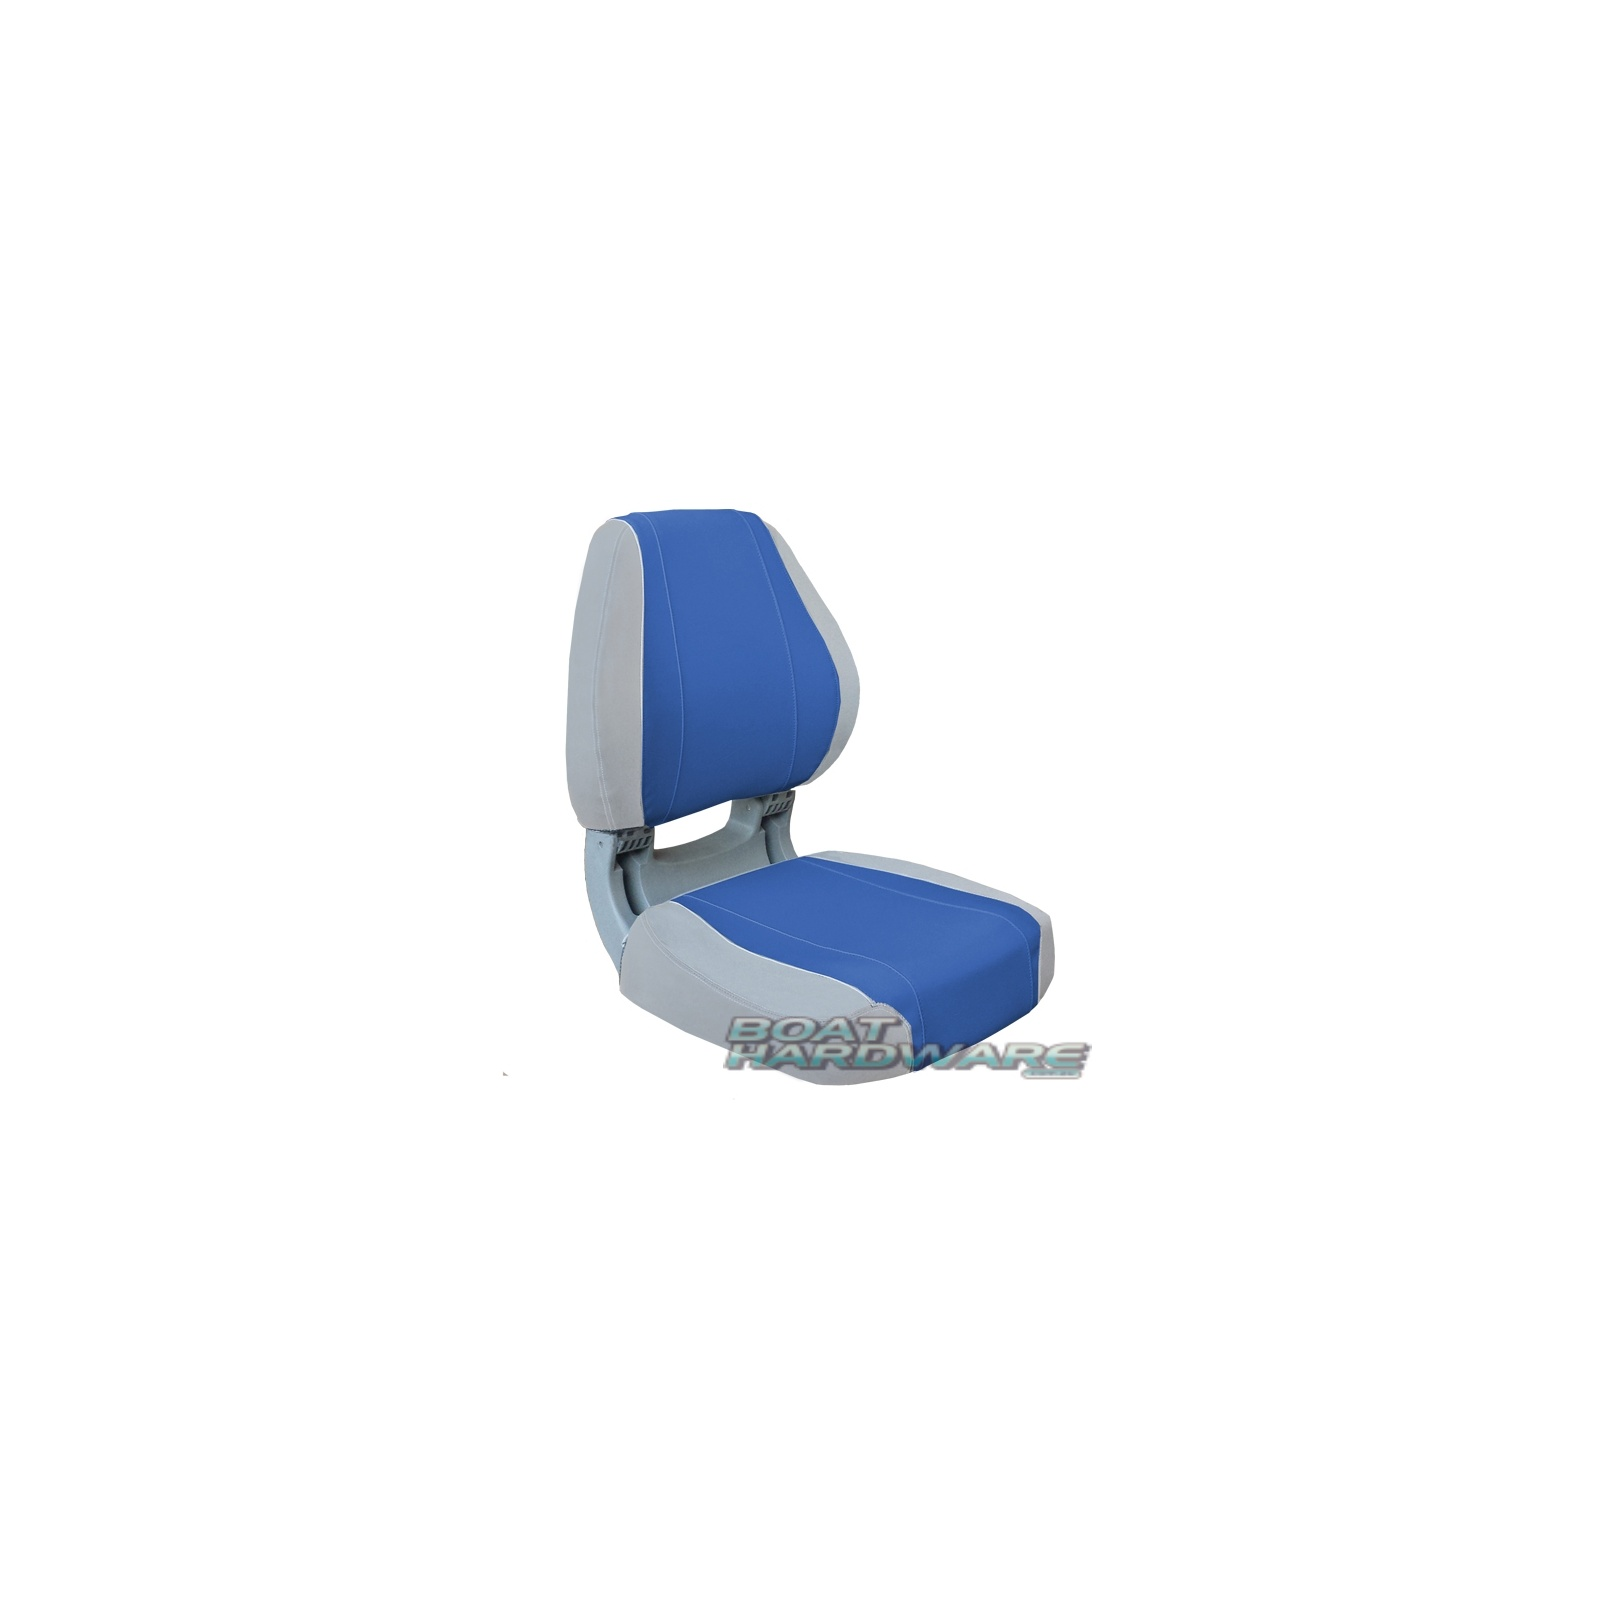 Sirocco Folding Seat Grey/Blue MA705-36